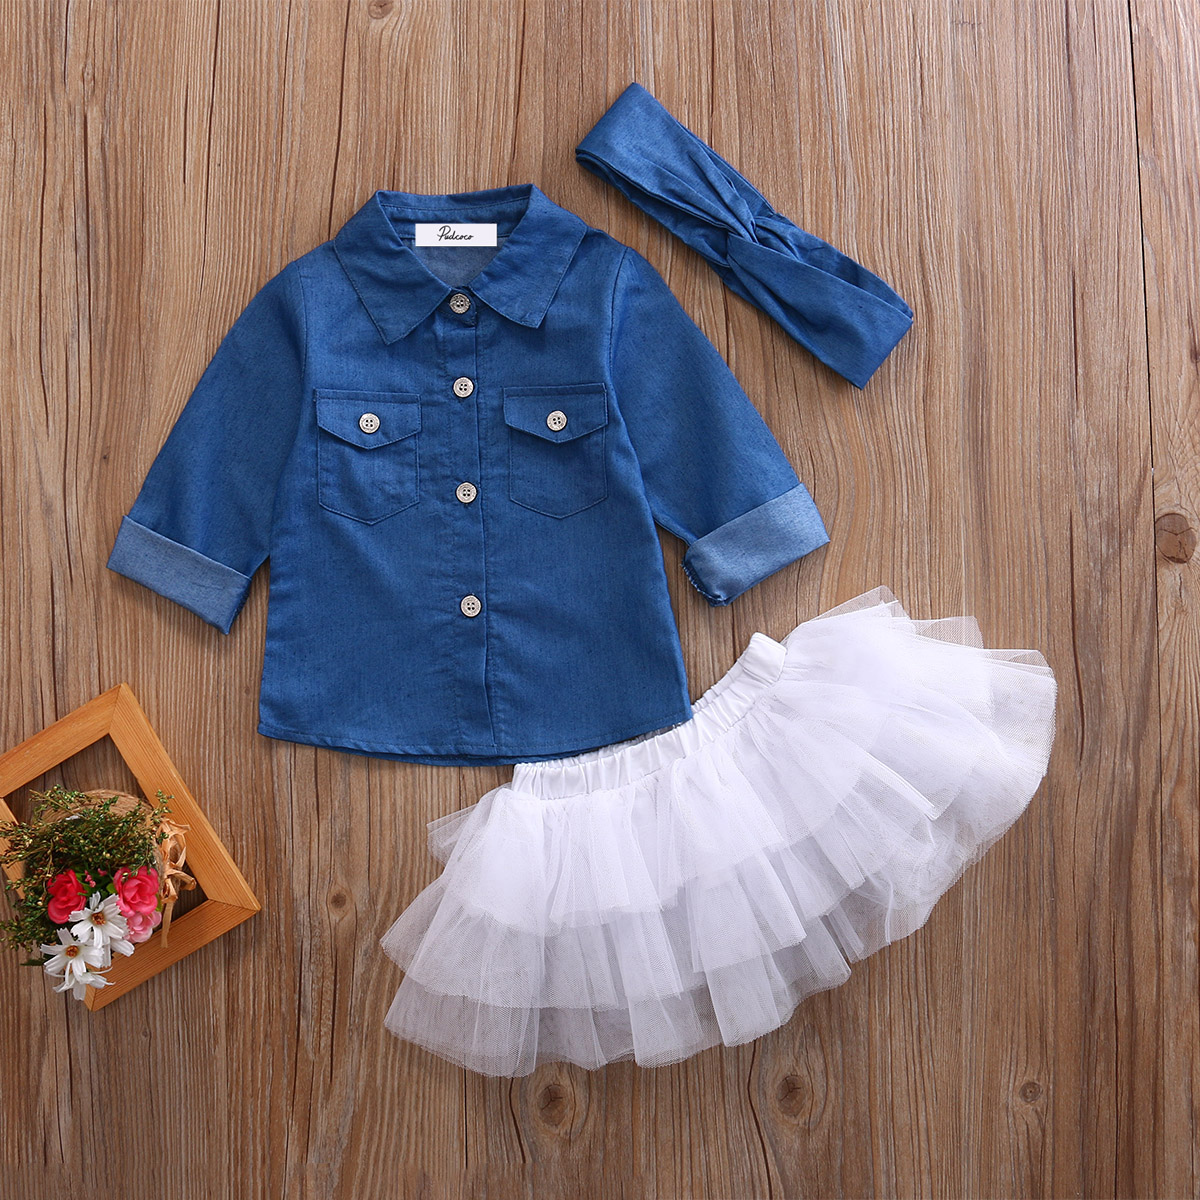 Kids Baby Girls Denim Tops T shirt+White Tutu Skirts+Headband 3pcs Outfits Clothes Set Summer Long Sleeve Children Clothing Sets 3pcs outfit infantil girls clothes toddler baby girl plaid ruffled tops kids girls denim shorts cute headband summer outfits set